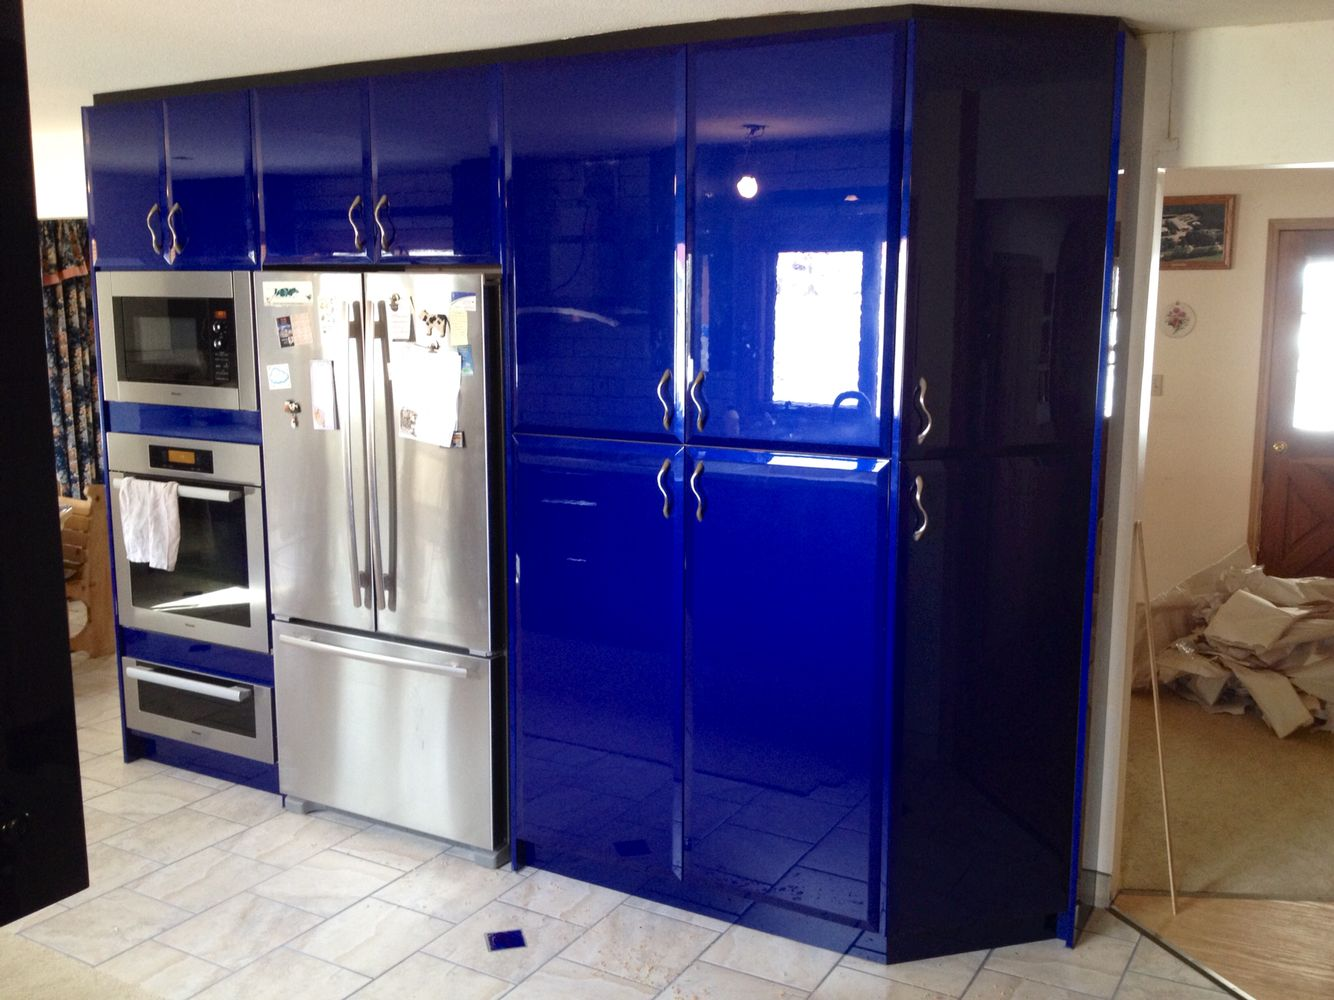 Kitchen Cabinets High Gloss high gloss automotive paint on kitchen cabinets | stuff i've built